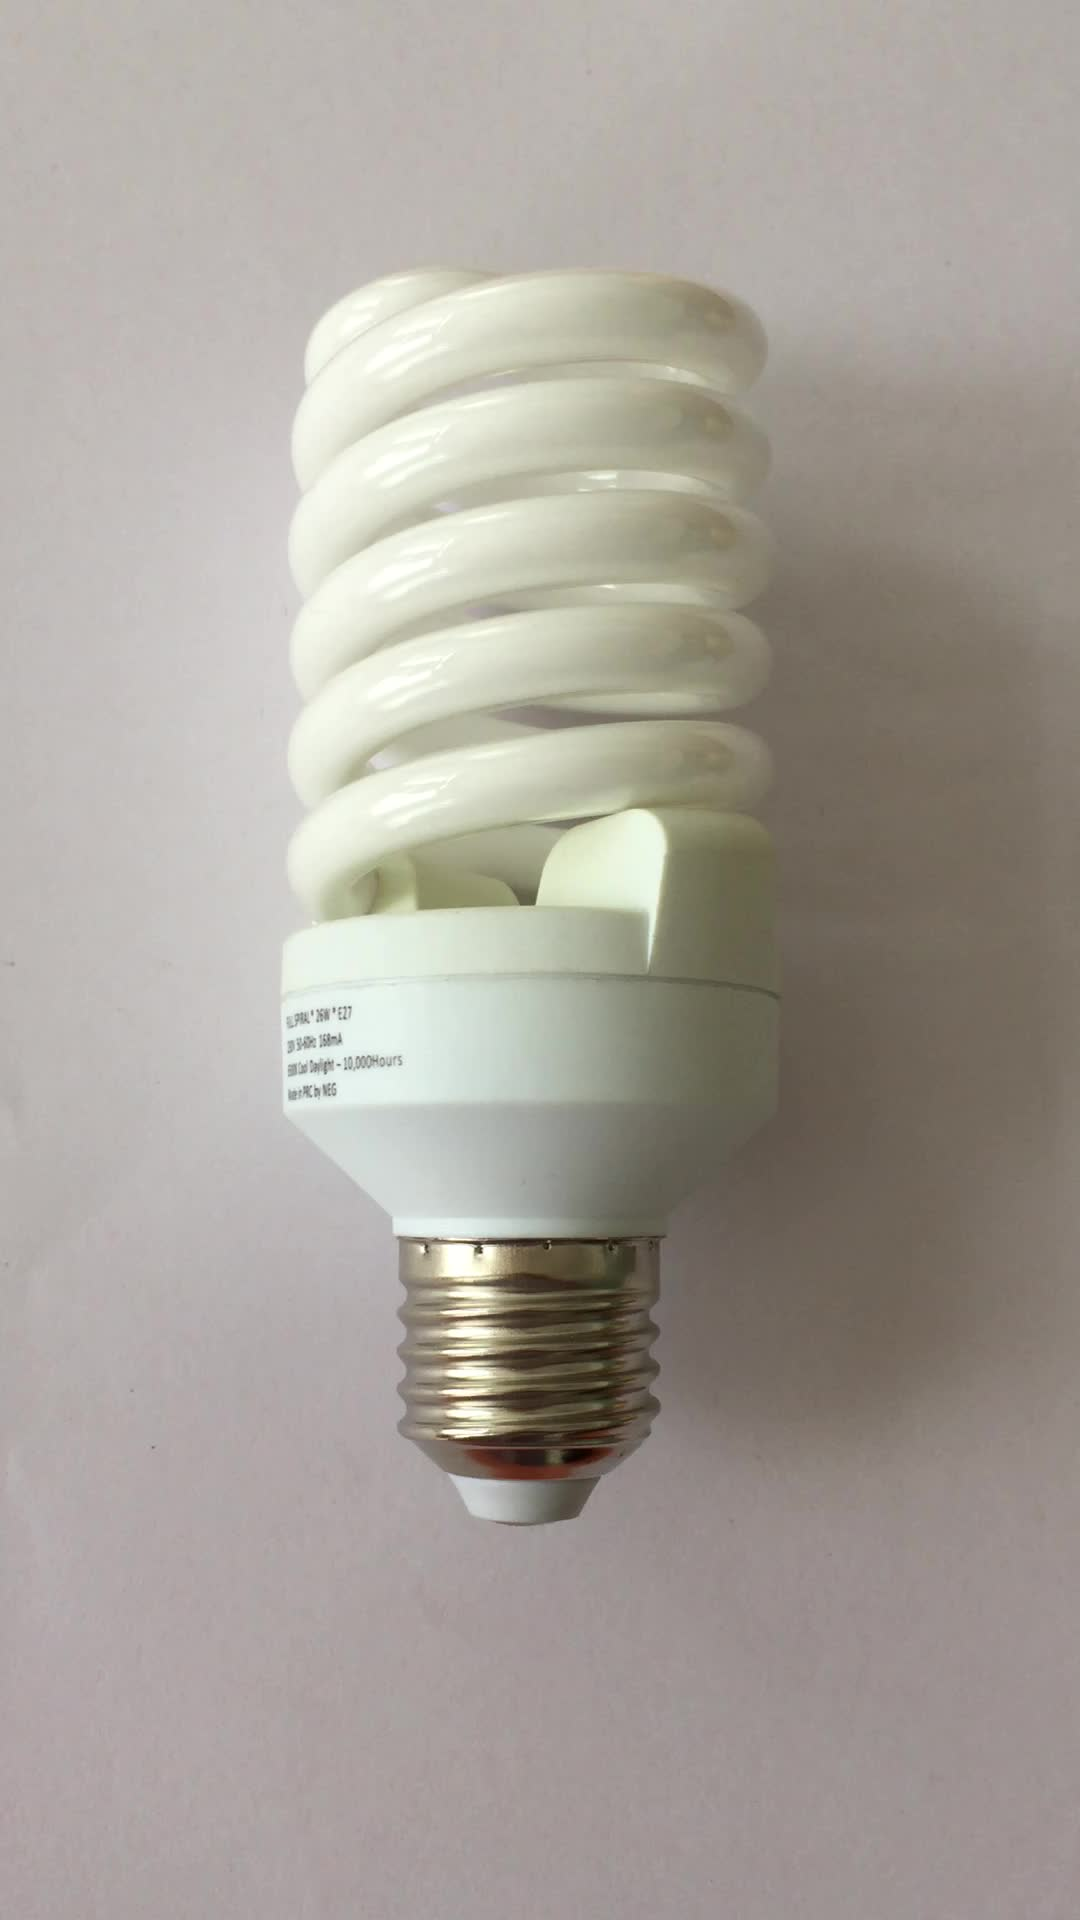 Alibaba 12 Volt Cfl Led Lights Bulbs Energy Saving Lamp Manufacturing Plant Buy Cfl